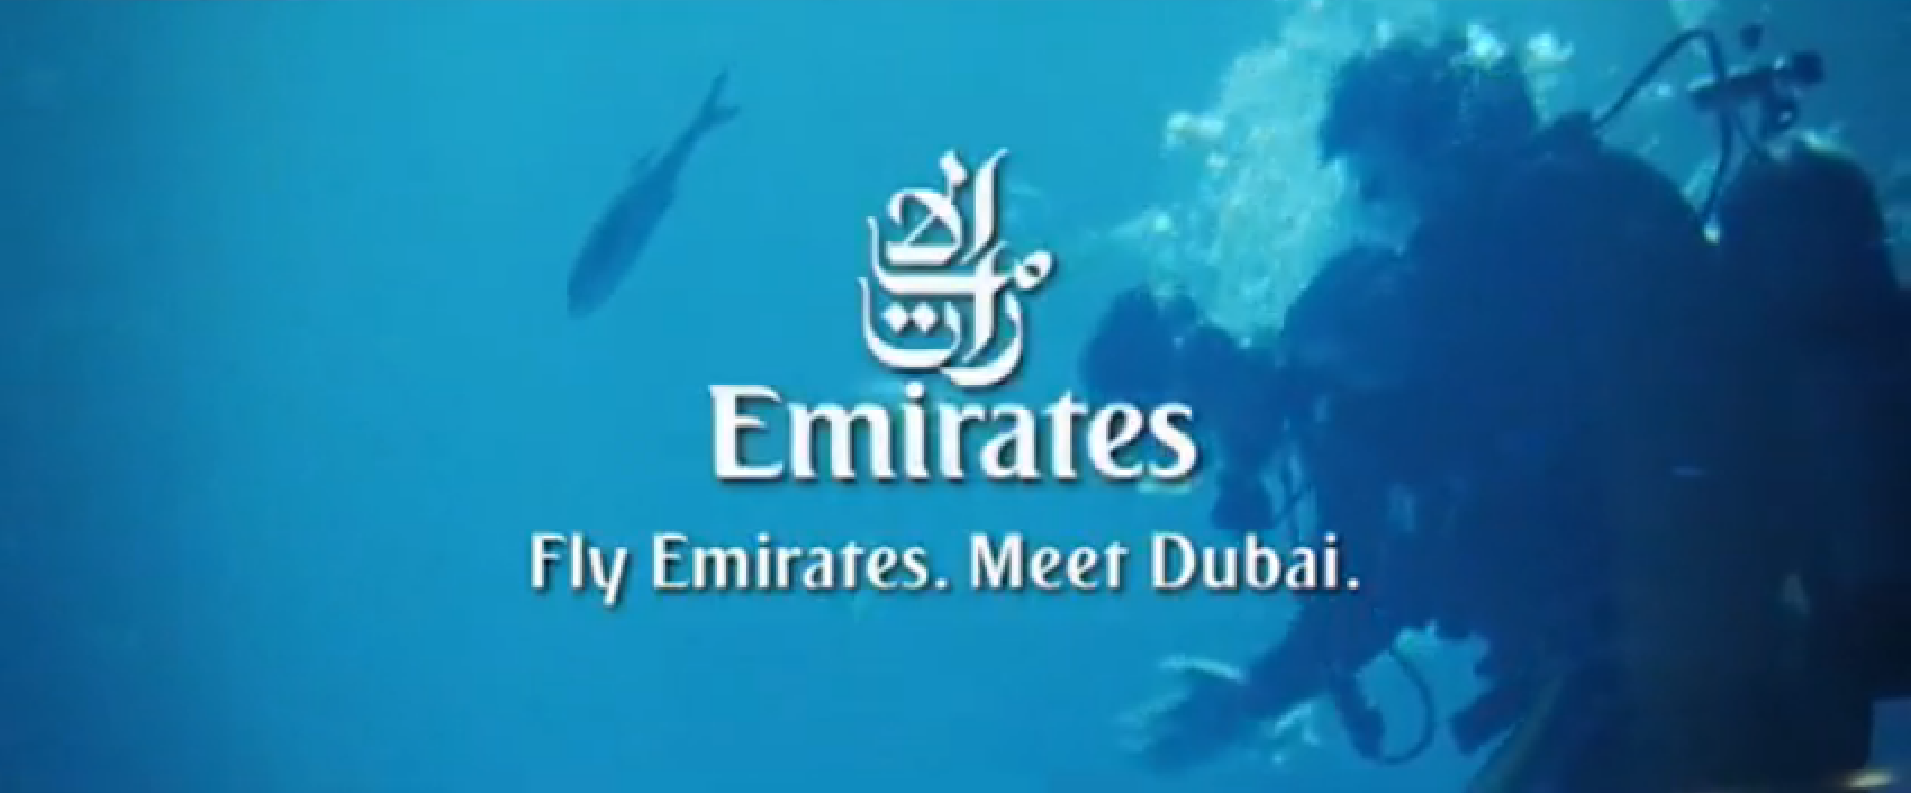 Smythe's company Filmworks has also worked on corporate films for clients such as Emirates.